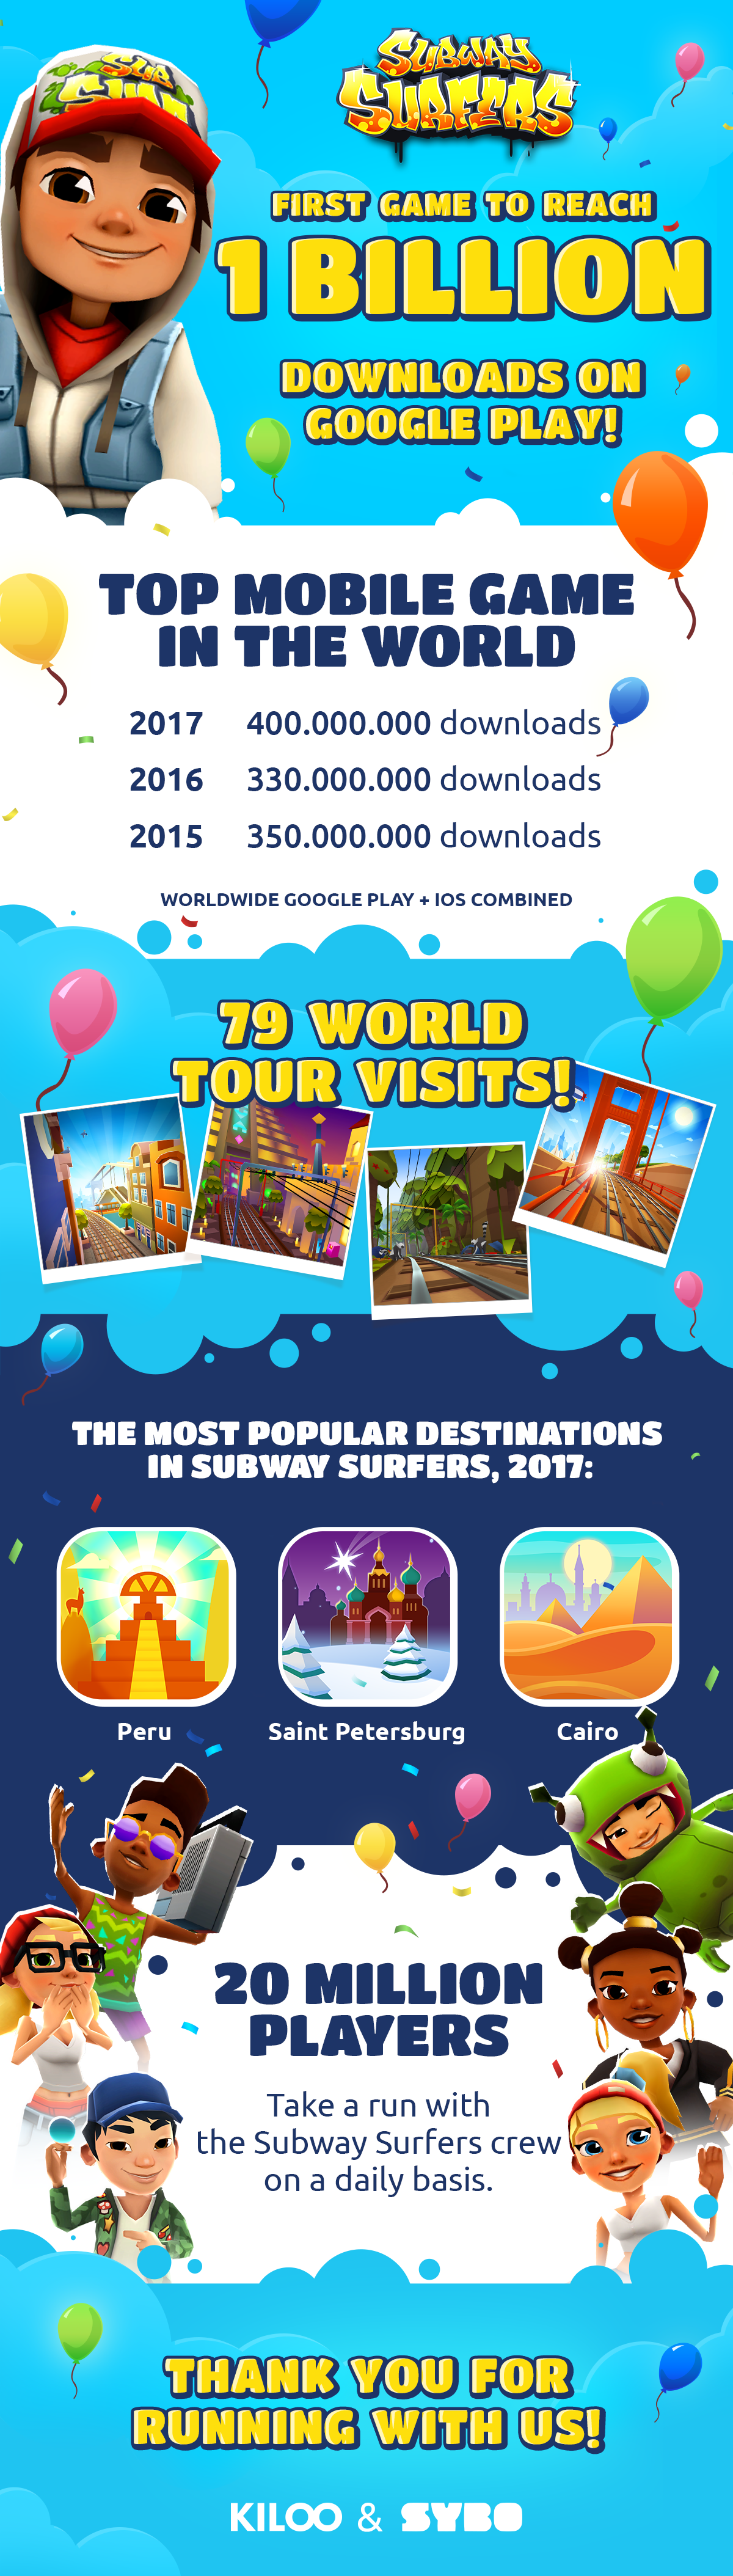 Danish game the world's most downloaded in 2015 – the post.